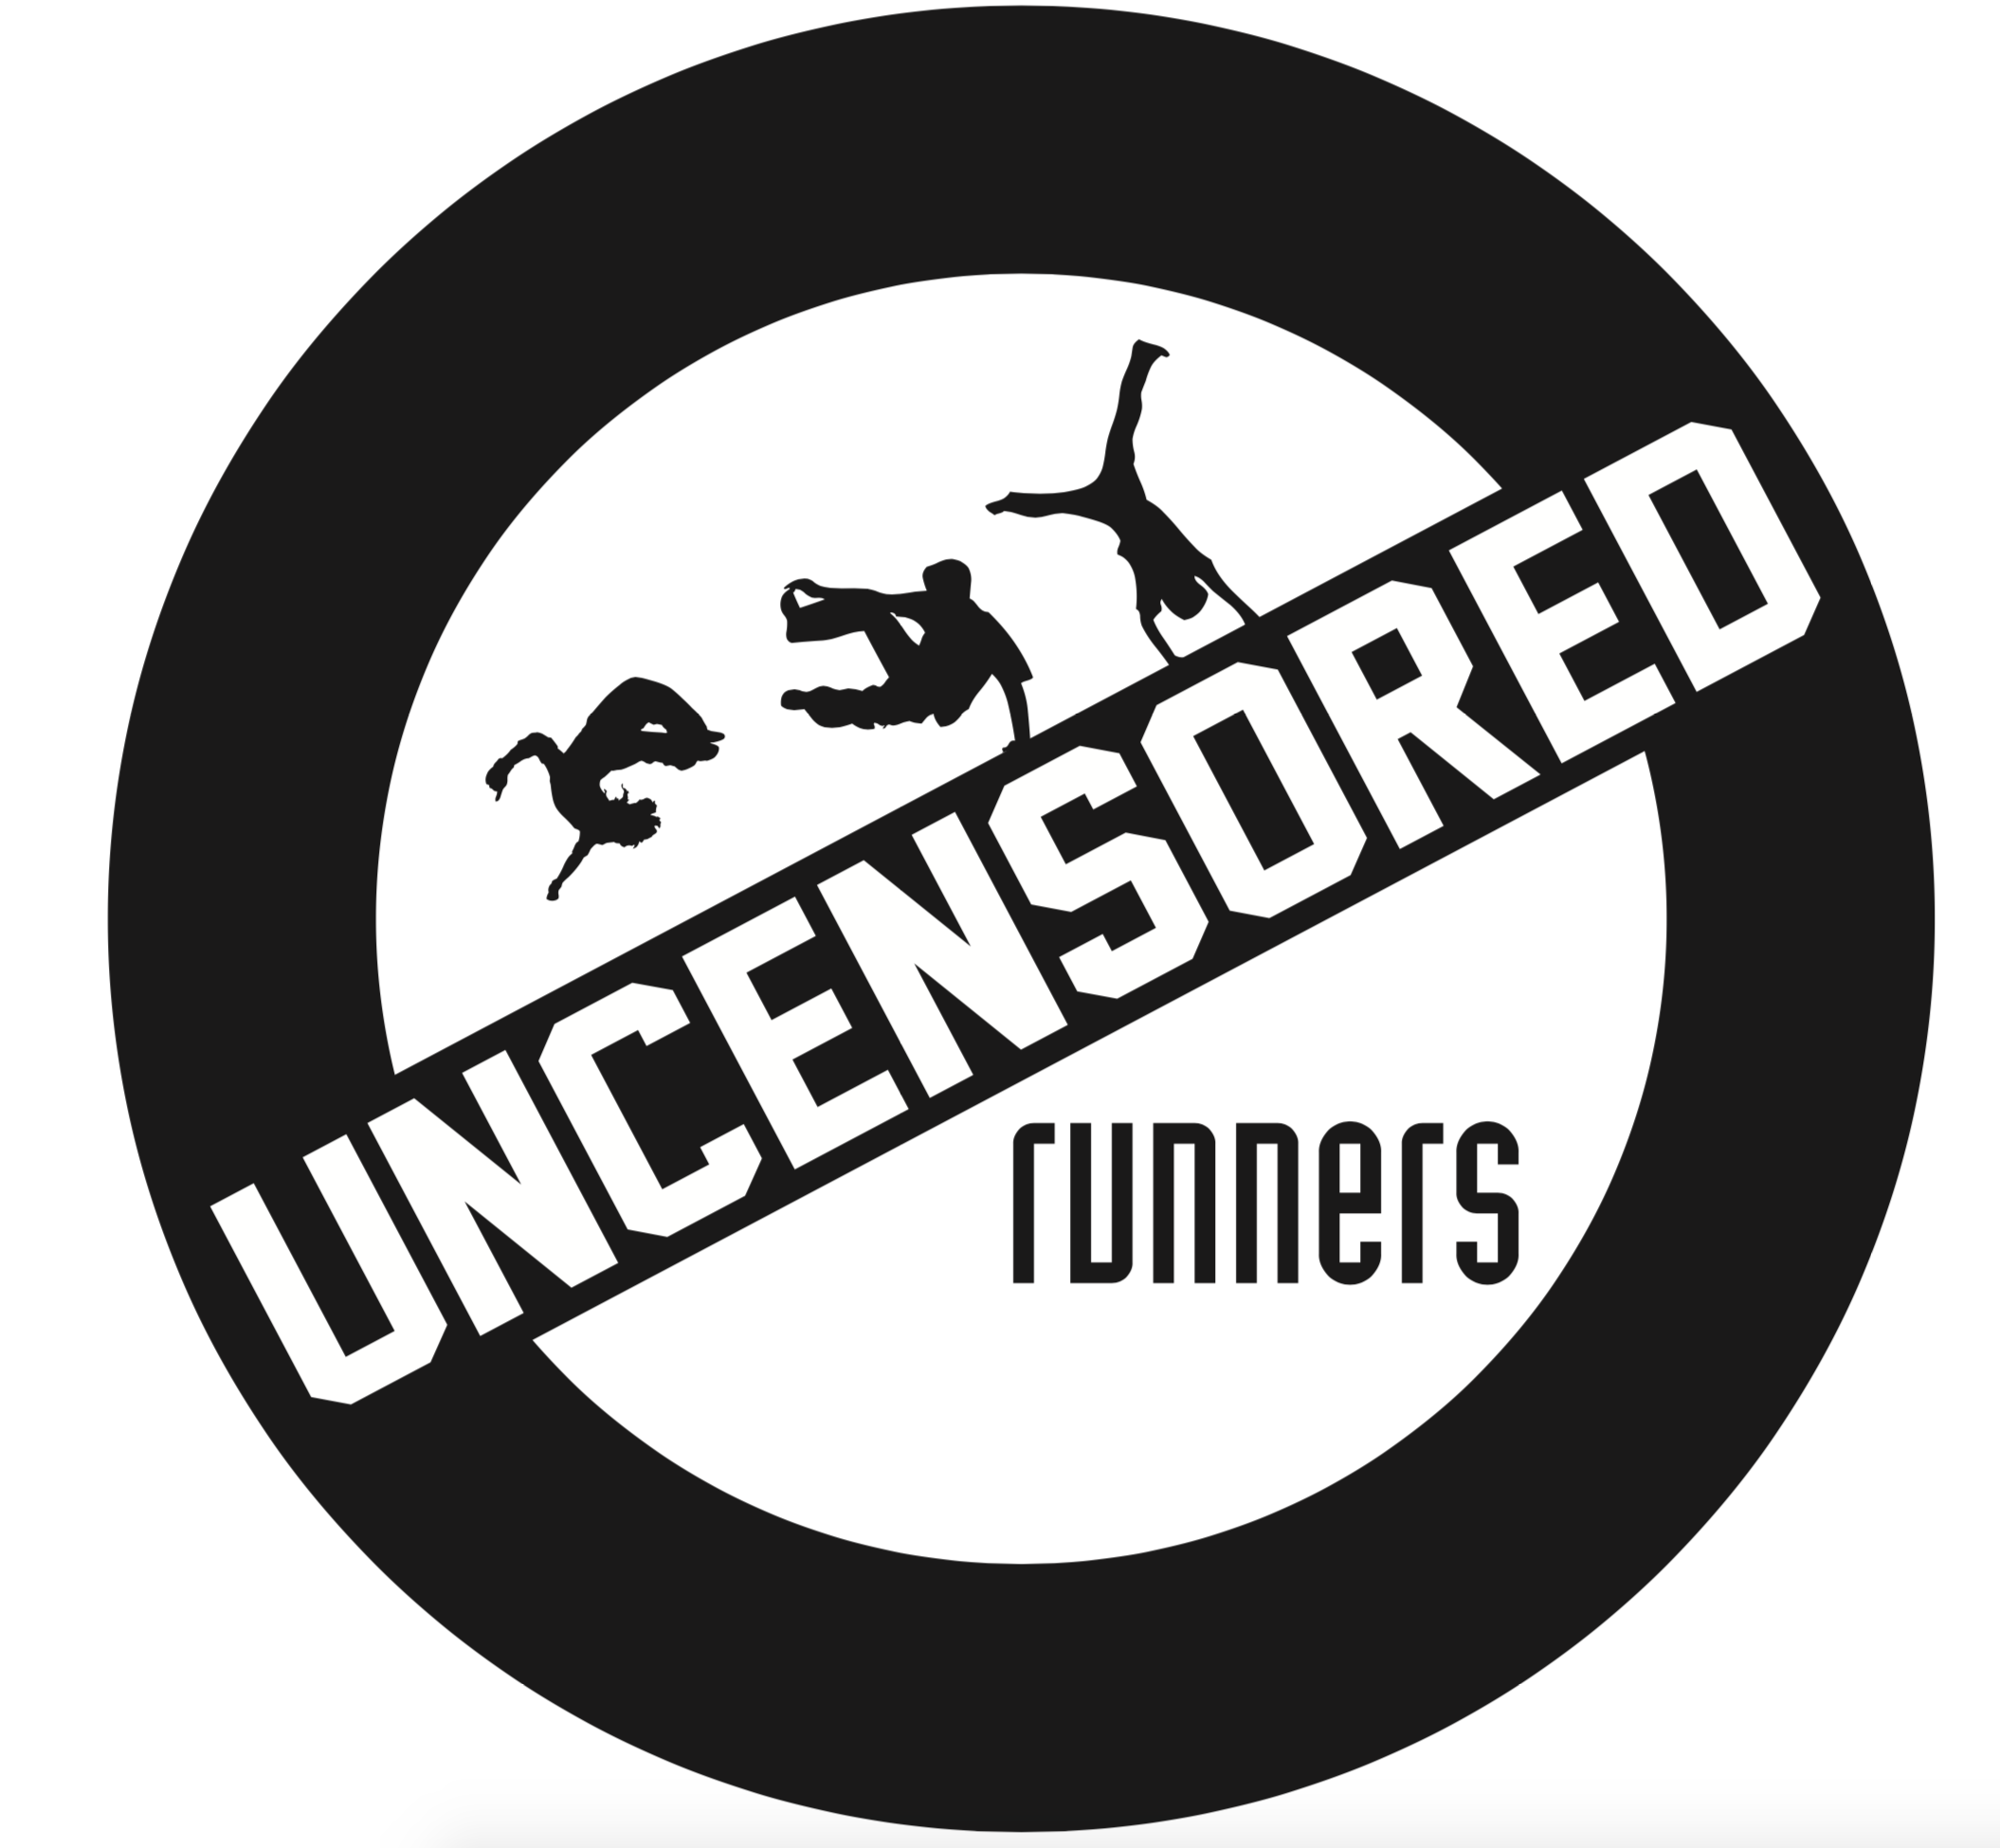 Uncensored Runners